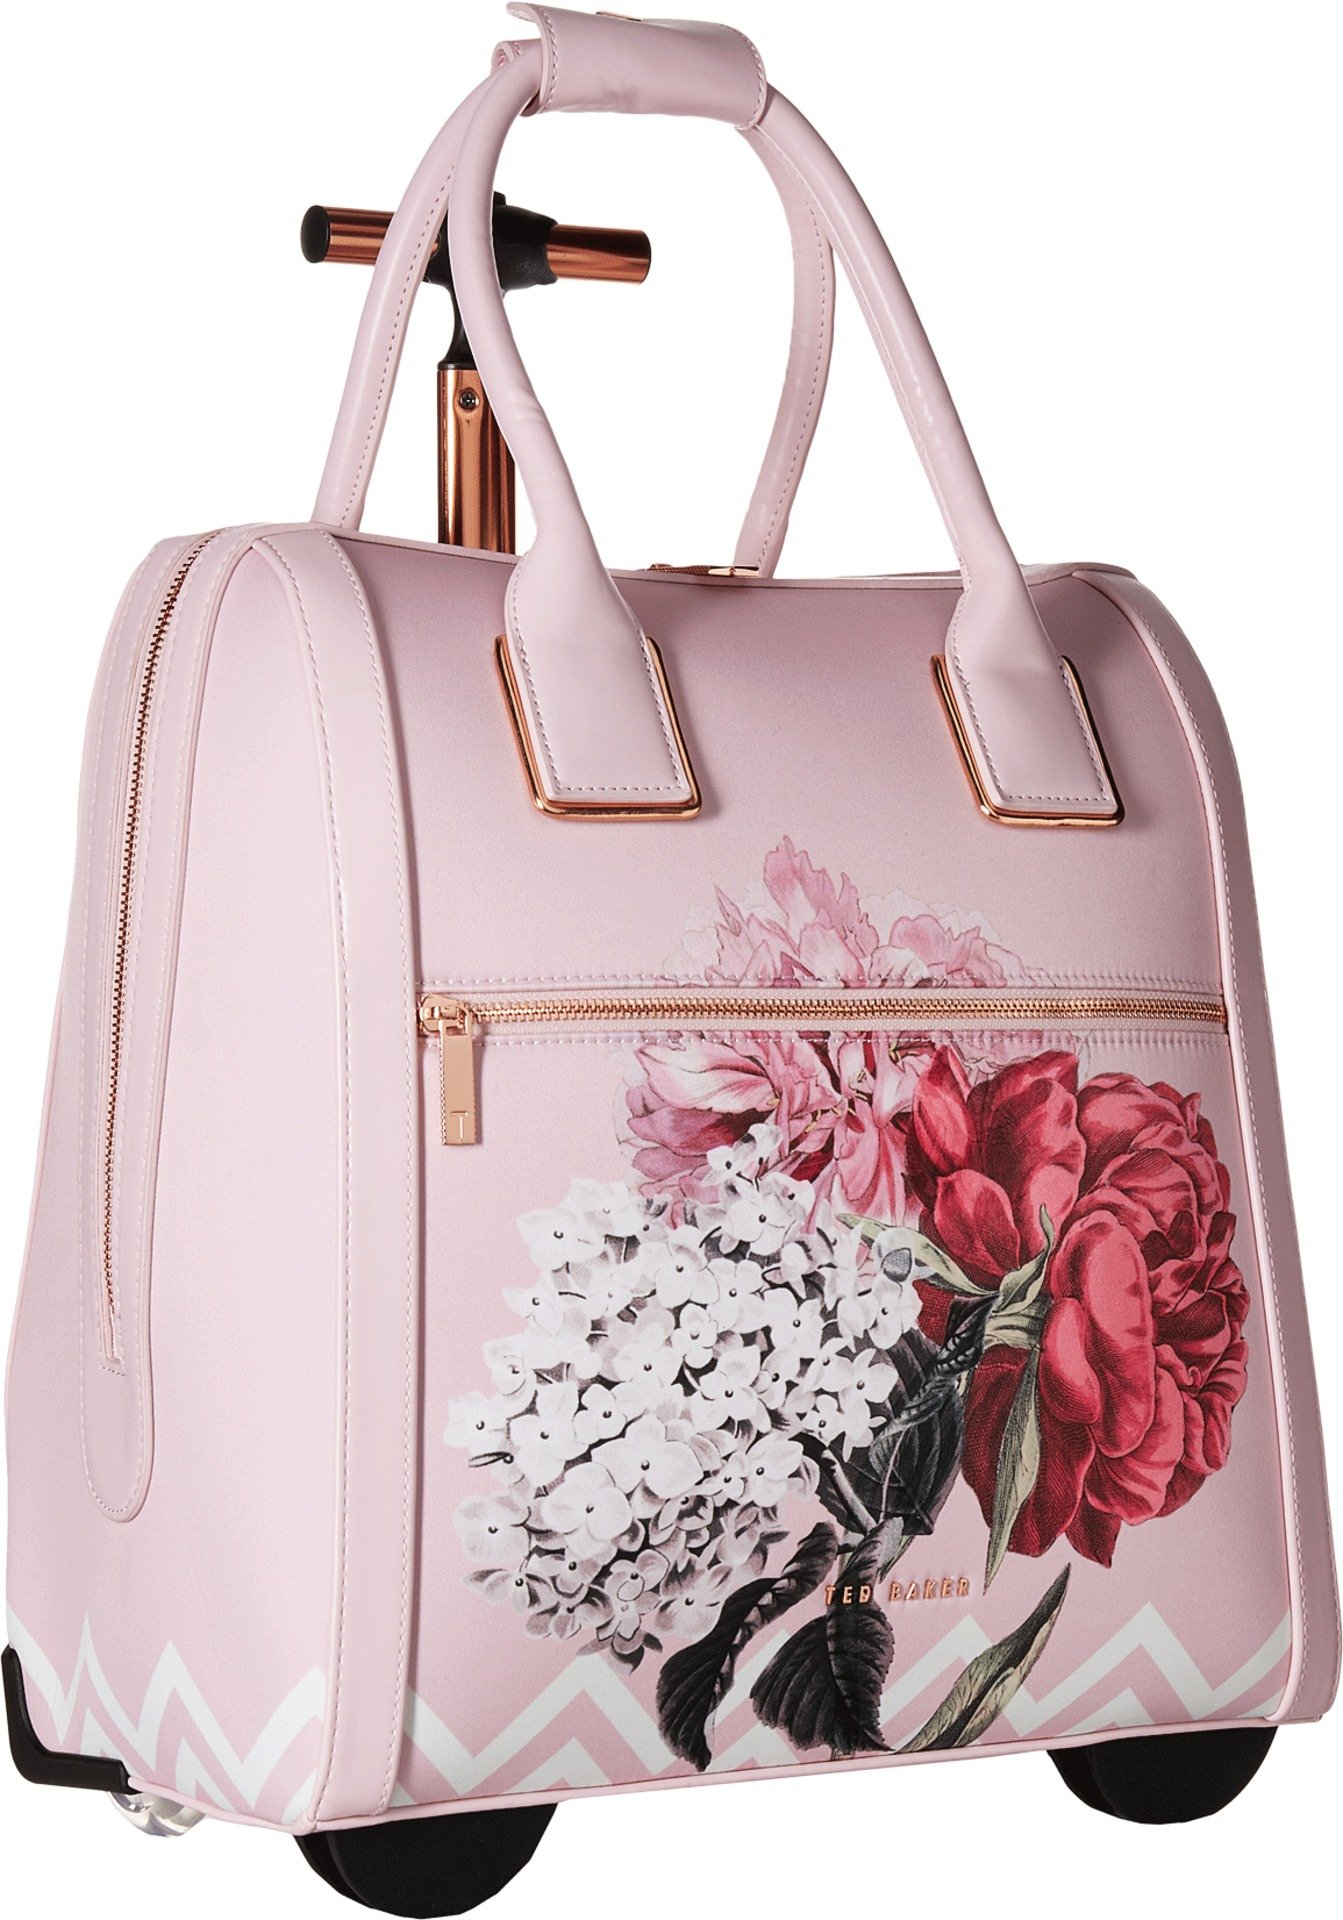 Ted Baker Women's Emilia Dusky Pink One Size by Ted Baker (Image #1)